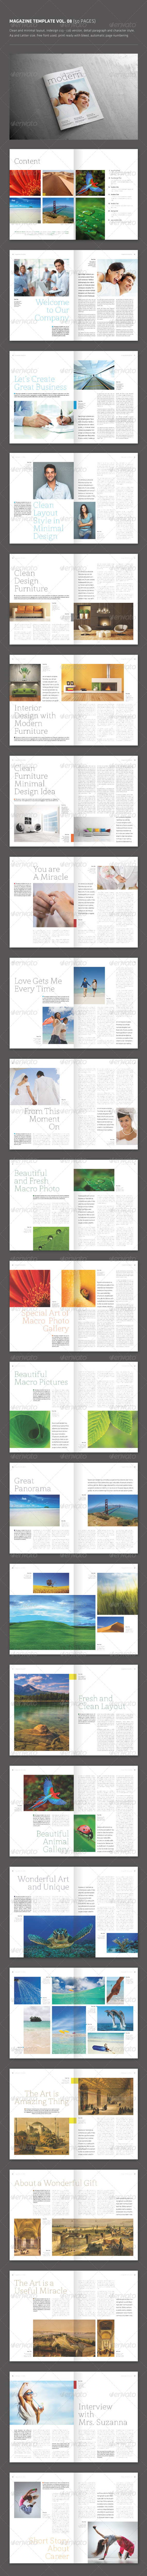 GraphicRiver InDesign Magazine Template Vol 08 50 pages 4038423